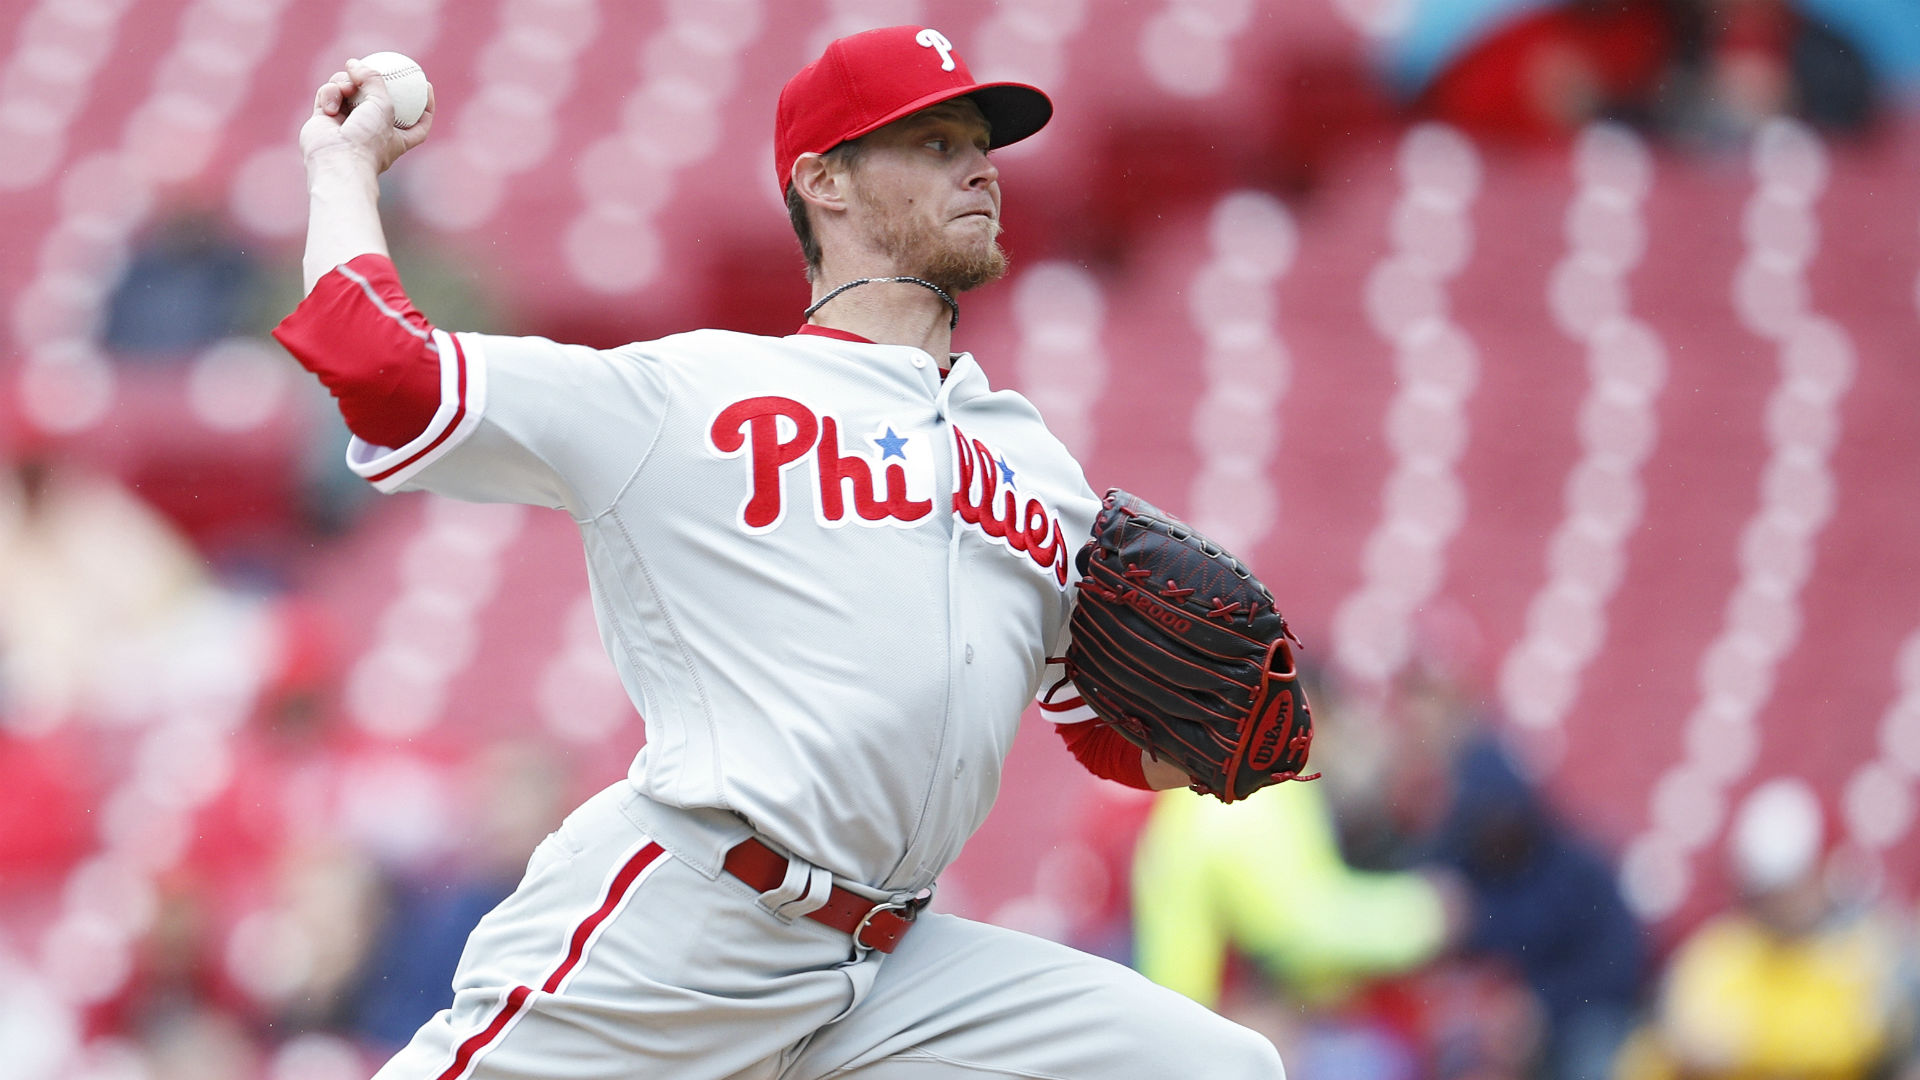 Phillies' Buchholz has forearm surgery, Kendrick put on DL